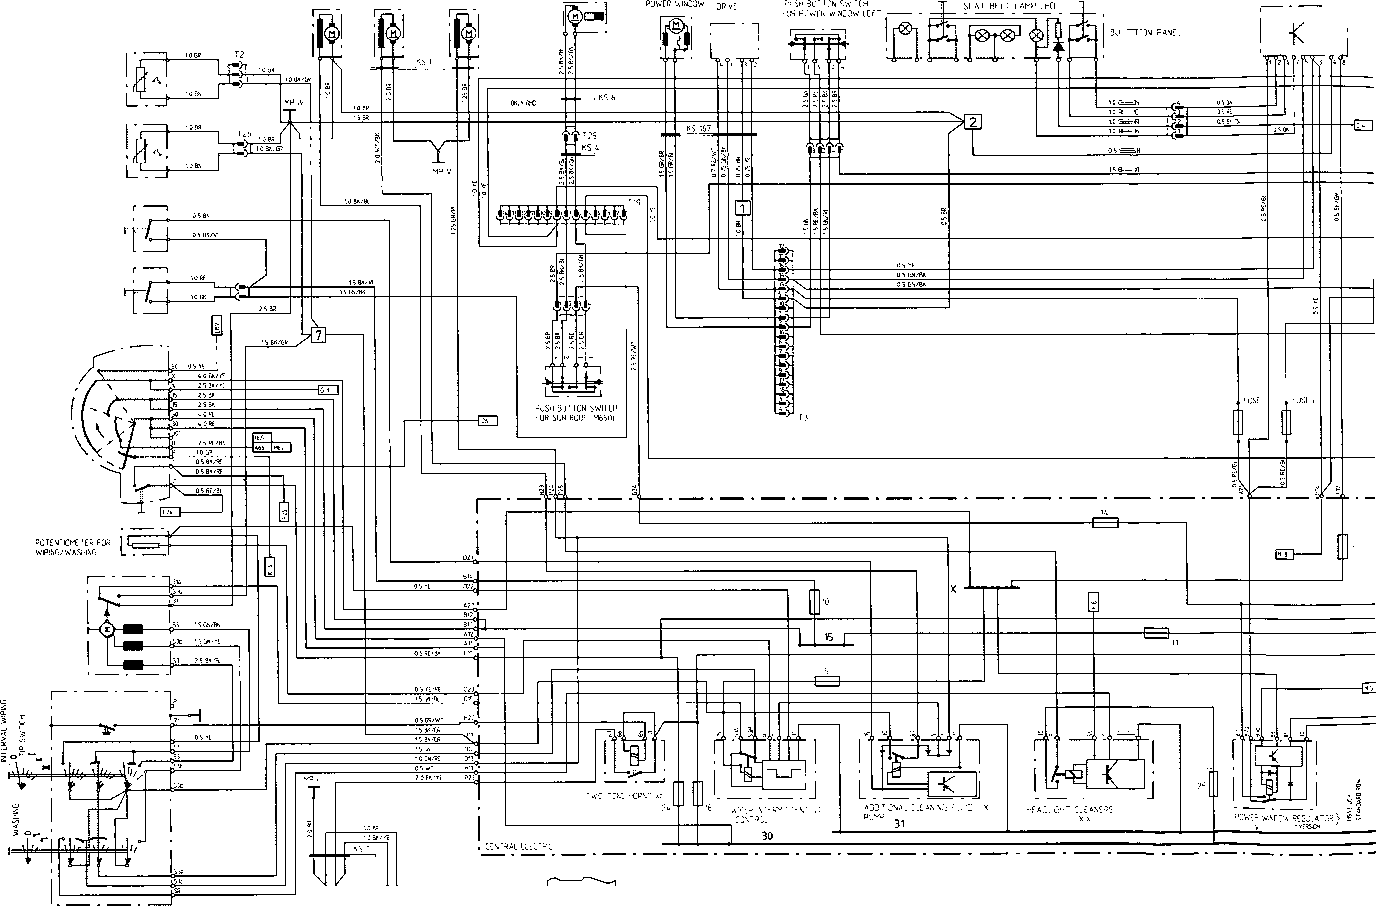 outstanding porsche 944 wiring diagram photos best images for rh oursweetbakeshop info porsche 944 relay diagram [ 1377 x 906 Pixel ]